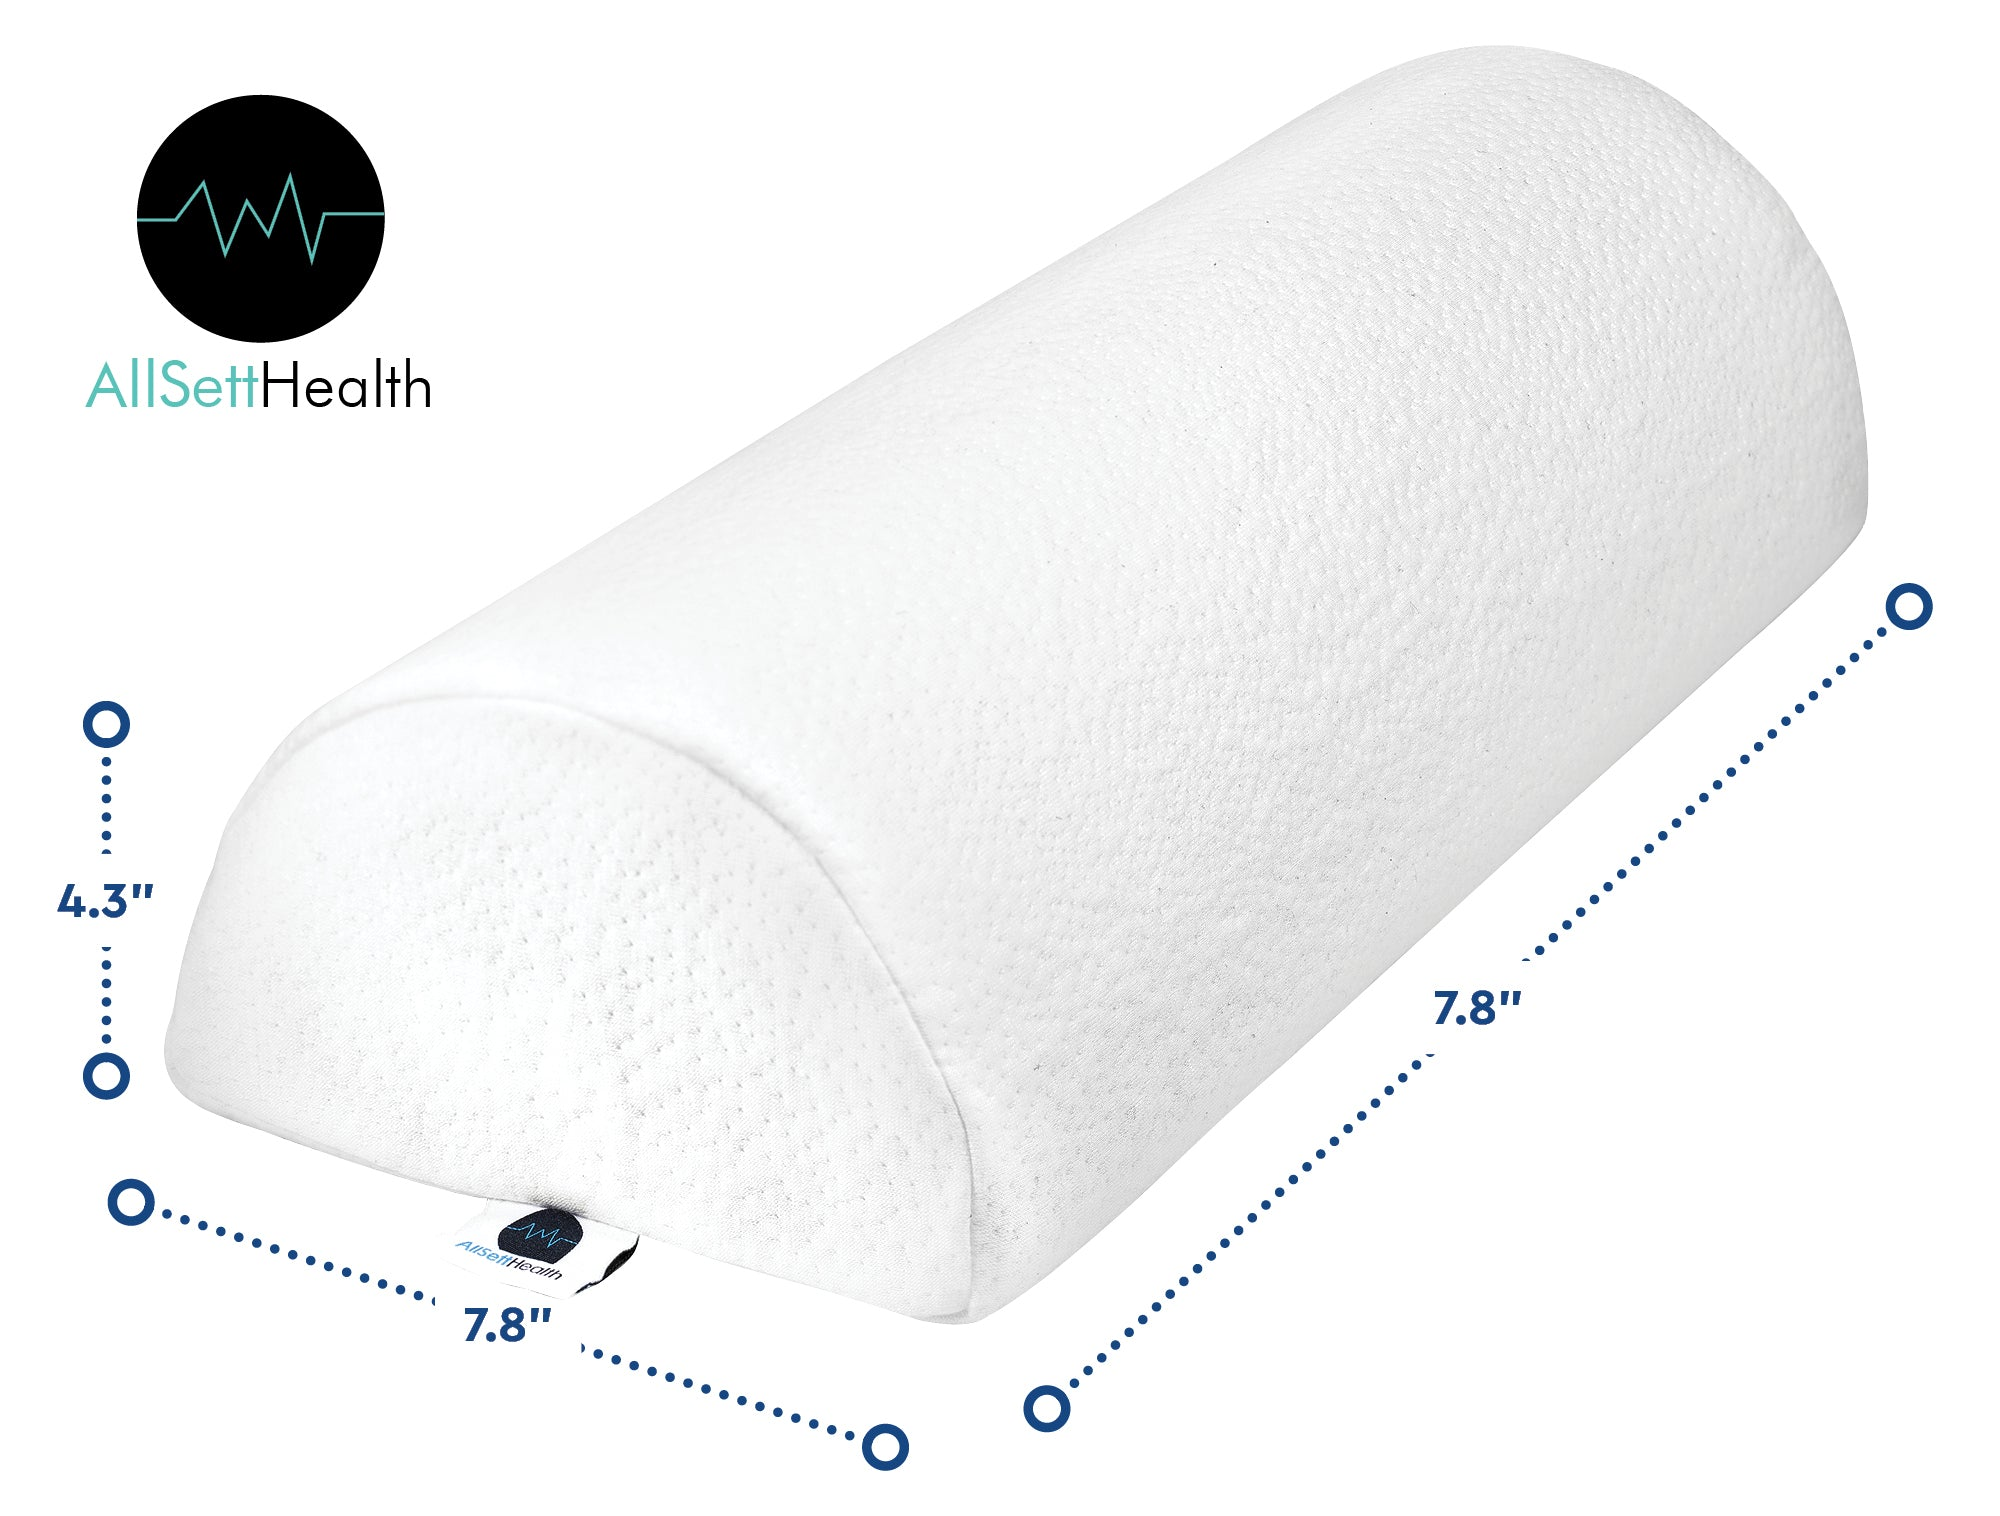 "2 PACK - Large Half Moon Bolster pillow for Legs, Back and Head | Semi Roll for Ankle and Foot Comfort With White Cotton Machine washable cover | Premium Memory Foam | 2 pillow system 20.5"" x 8"" x 4.5"""